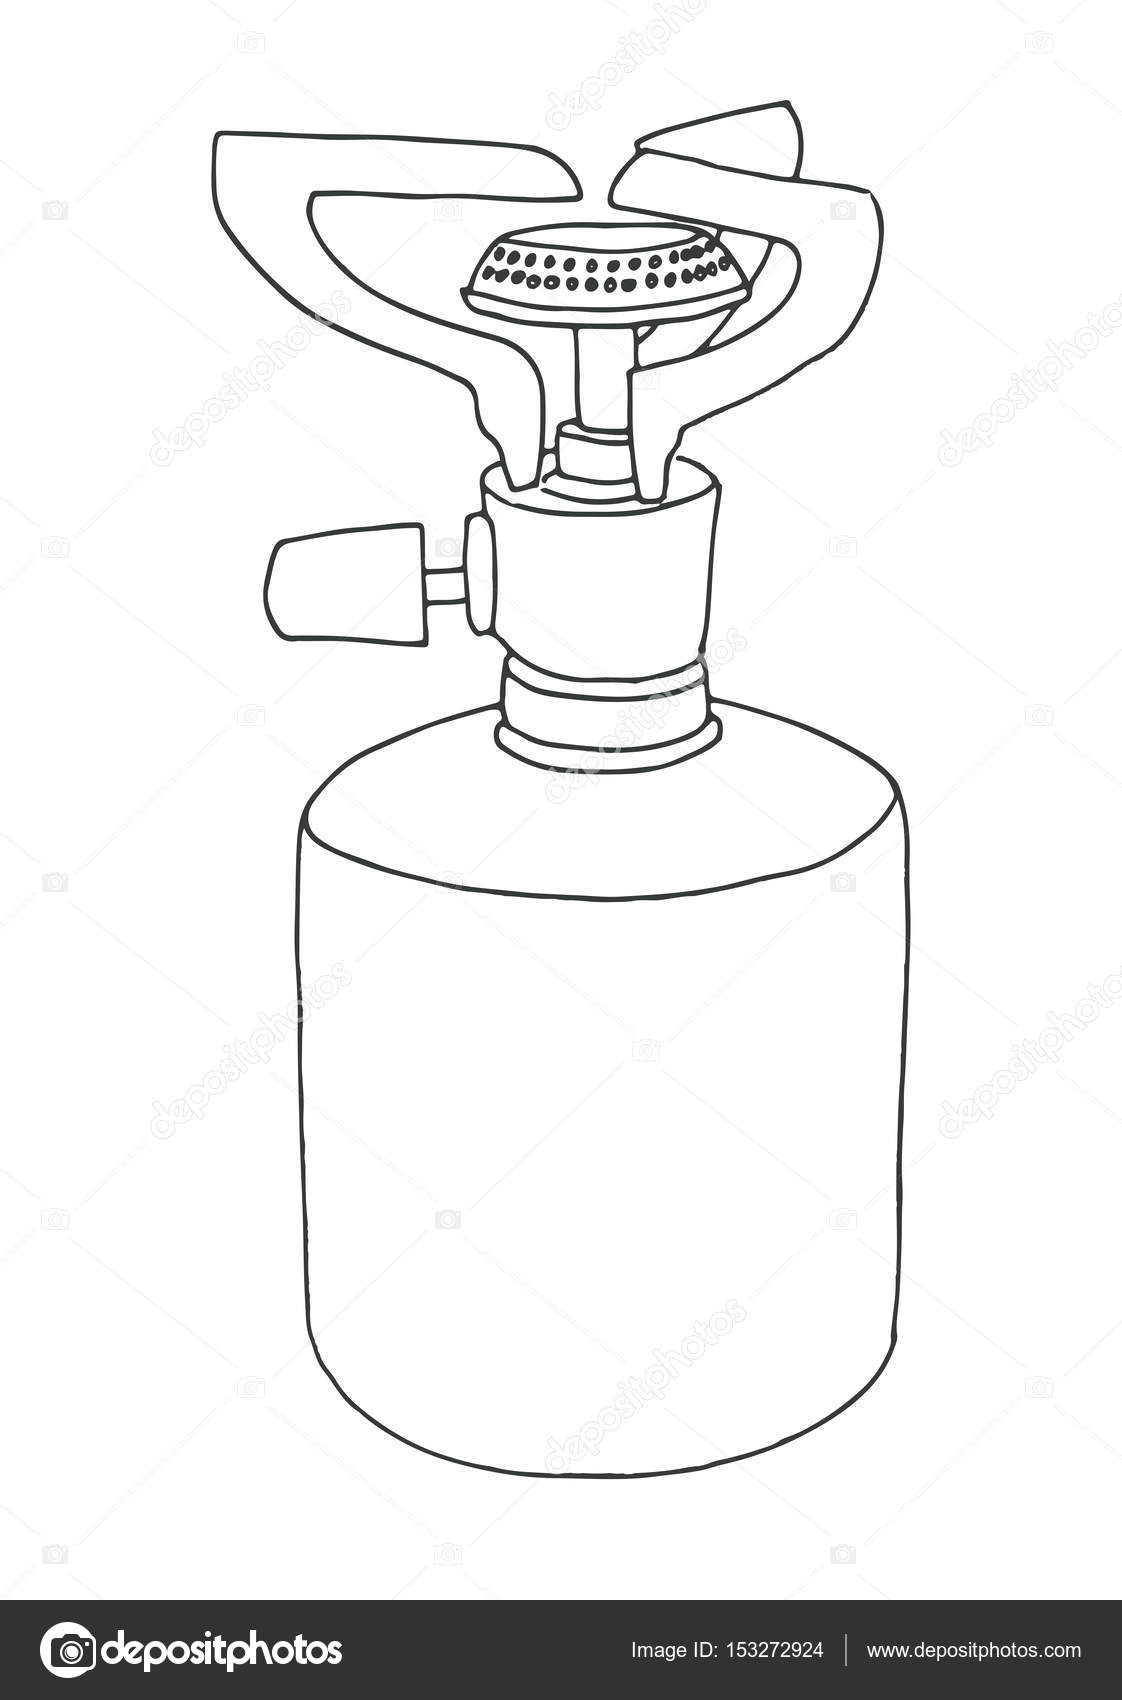 1122x1700 Sketch Of A Camping Stove. Vector Illustration. Burner Isolated